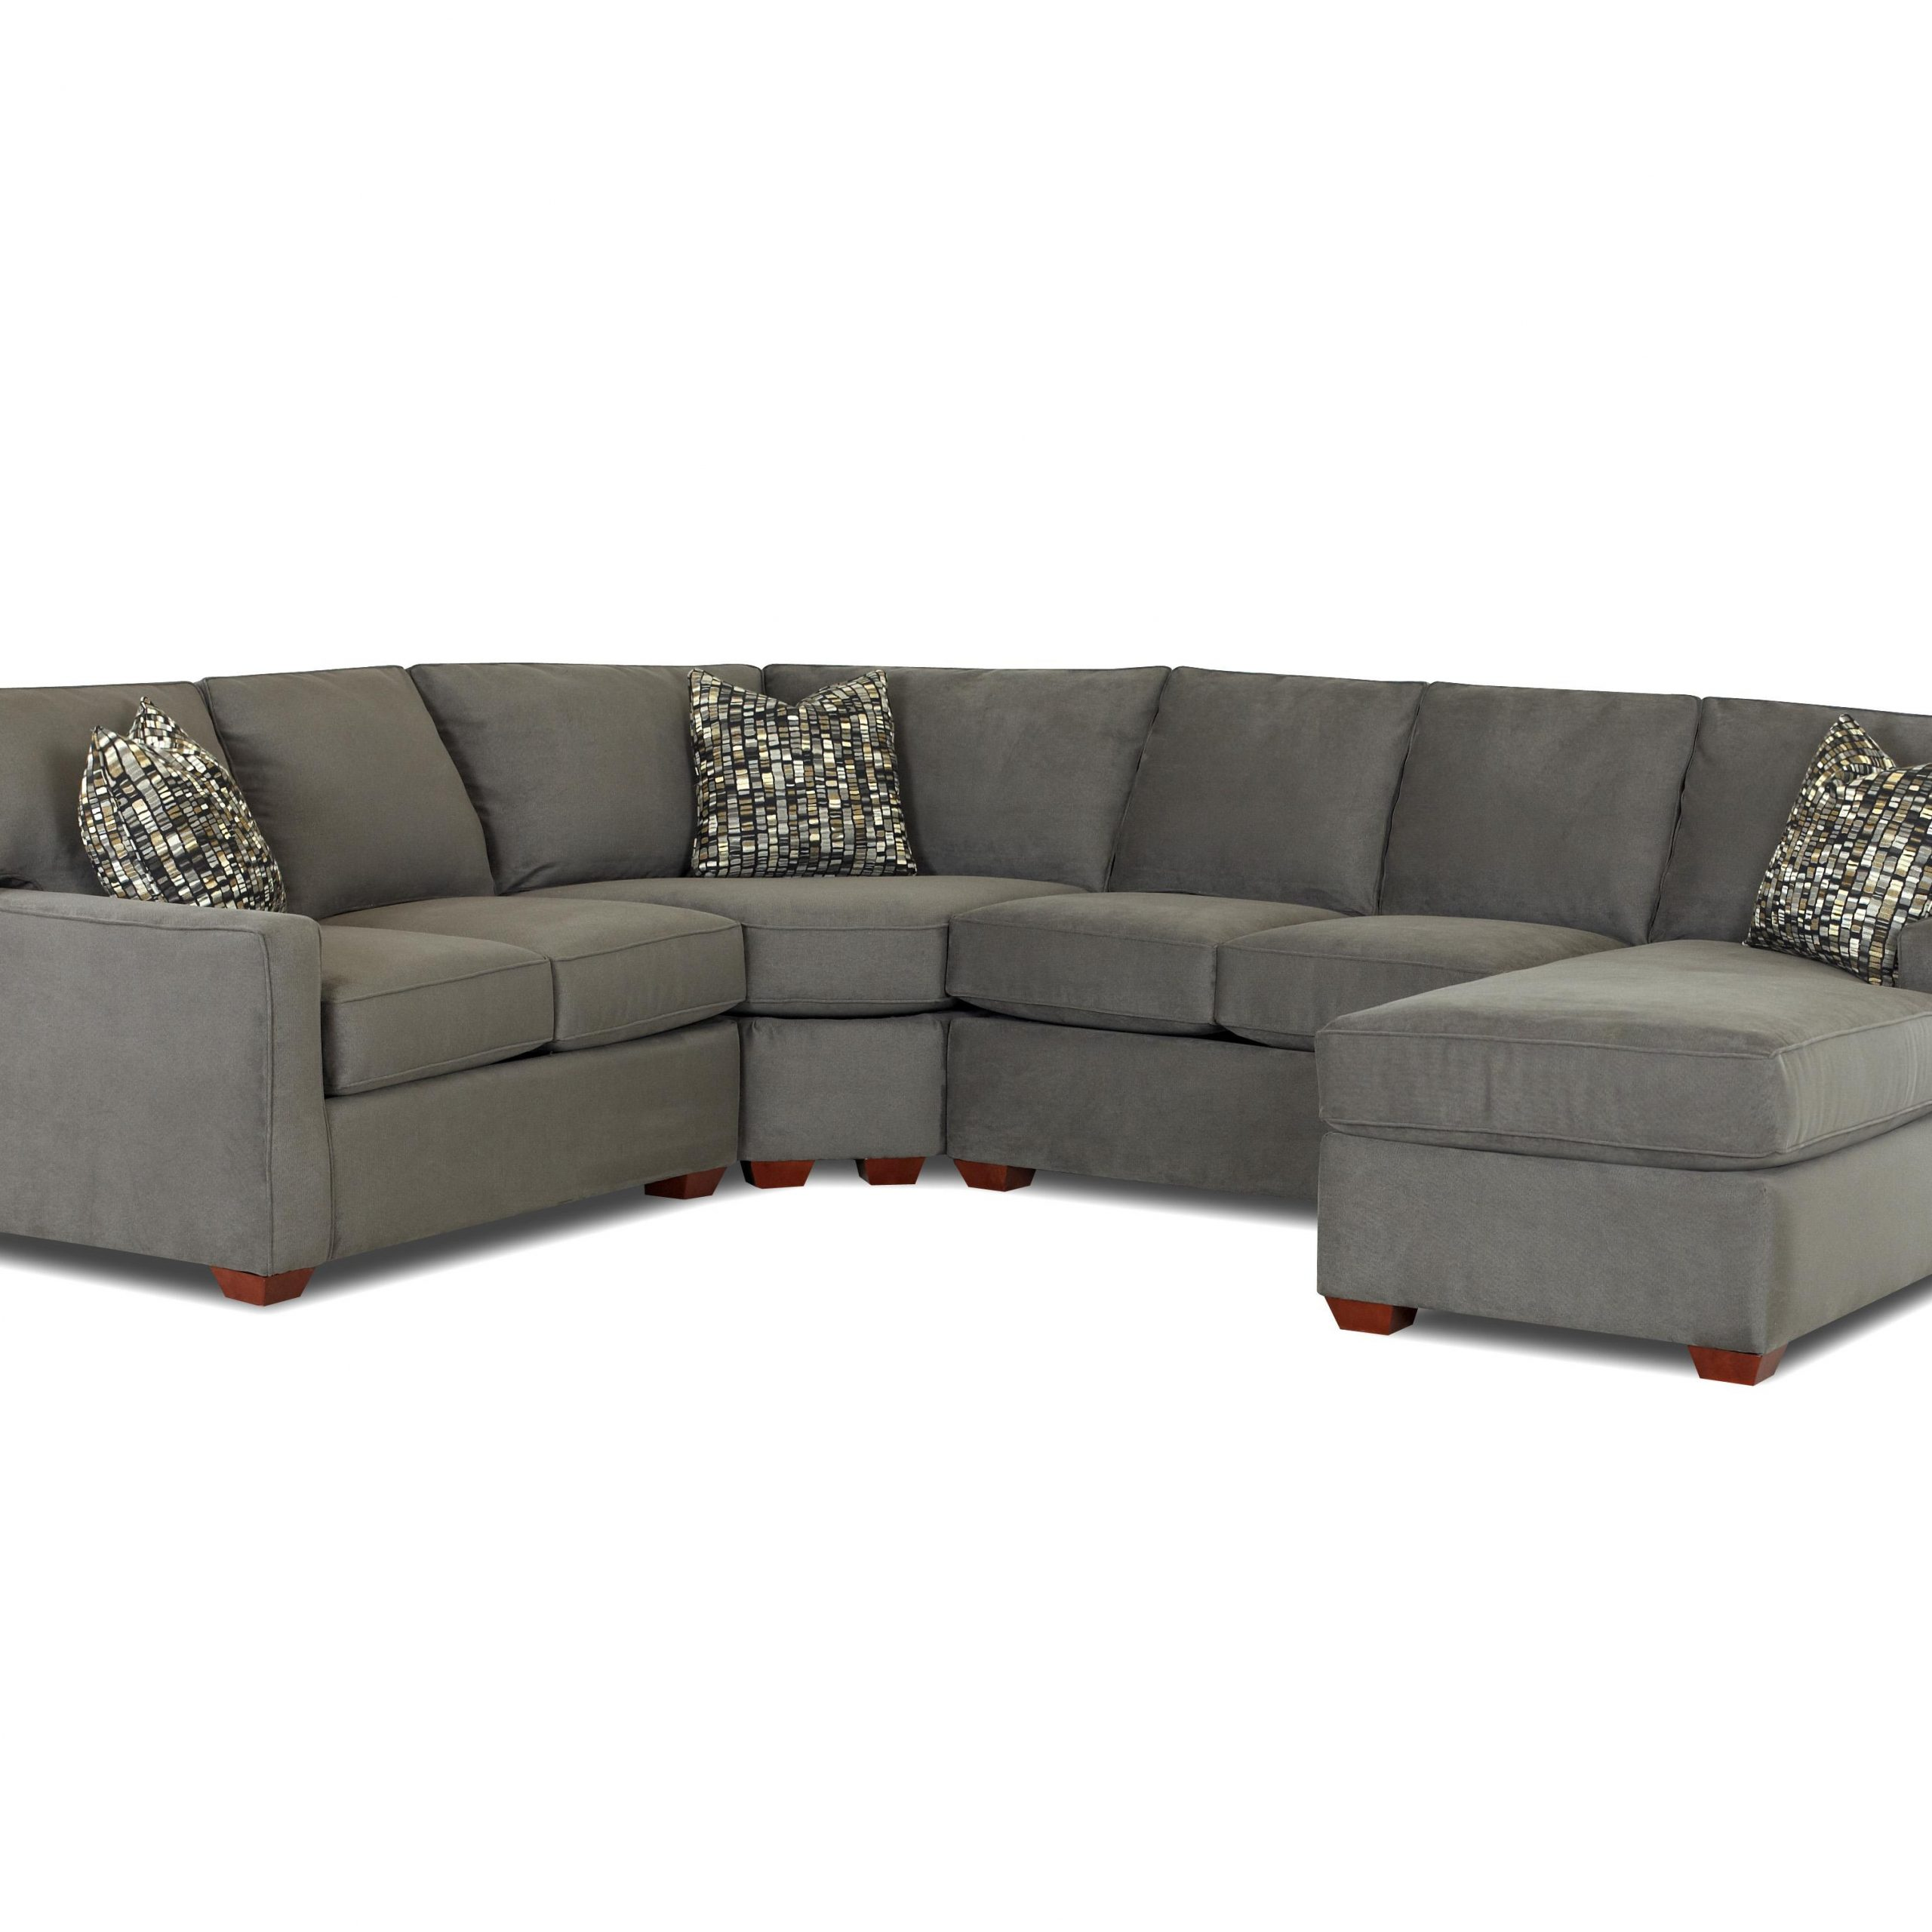 Widely Used Contemporary L Shaped Sectional Sofa With Left Arm Facing With Regard To Hannah Left Sectional Sofas (View 15 of 20)